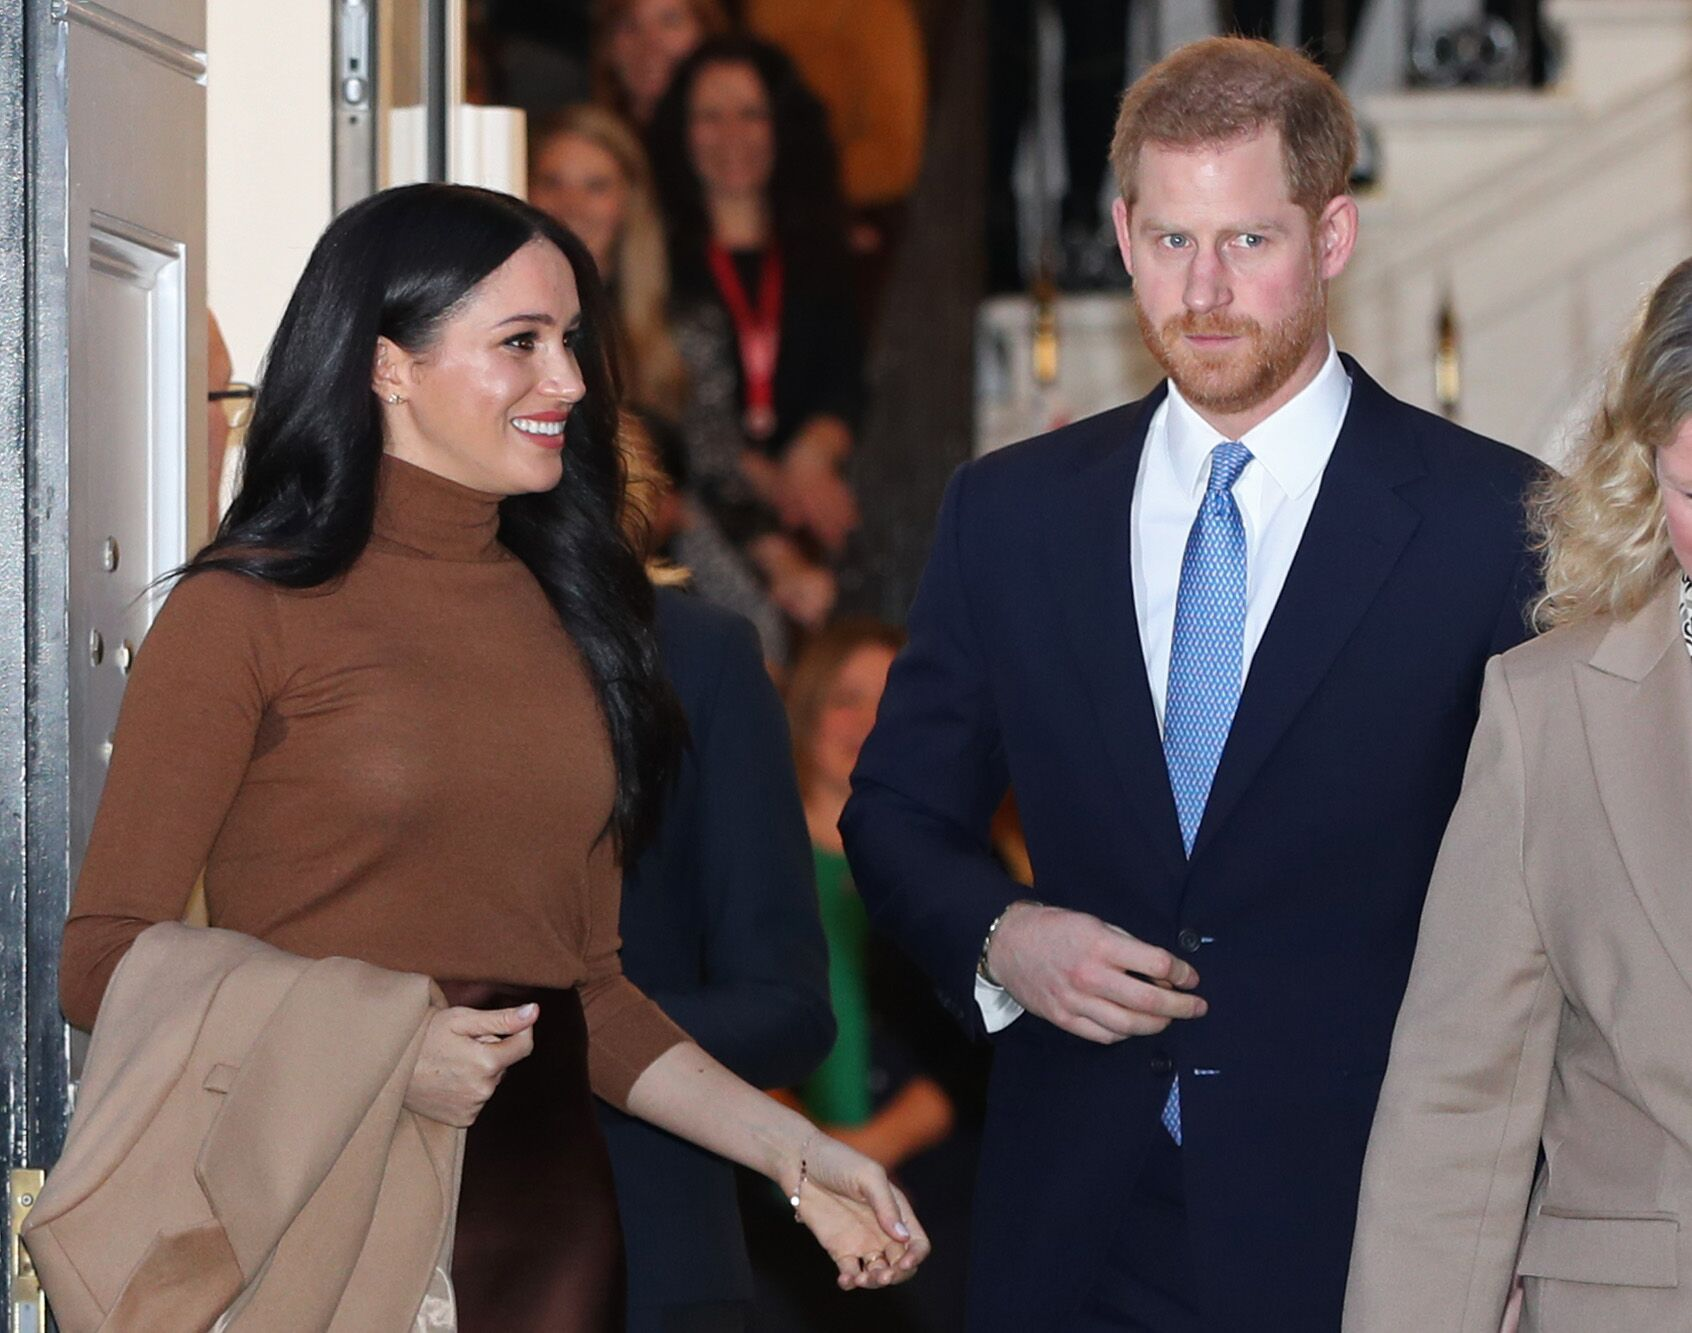 Duchess Meghan and Prince Harry visit Canada House, central London on January 7, 2020 | Photo: Yui Mok/Getty Images